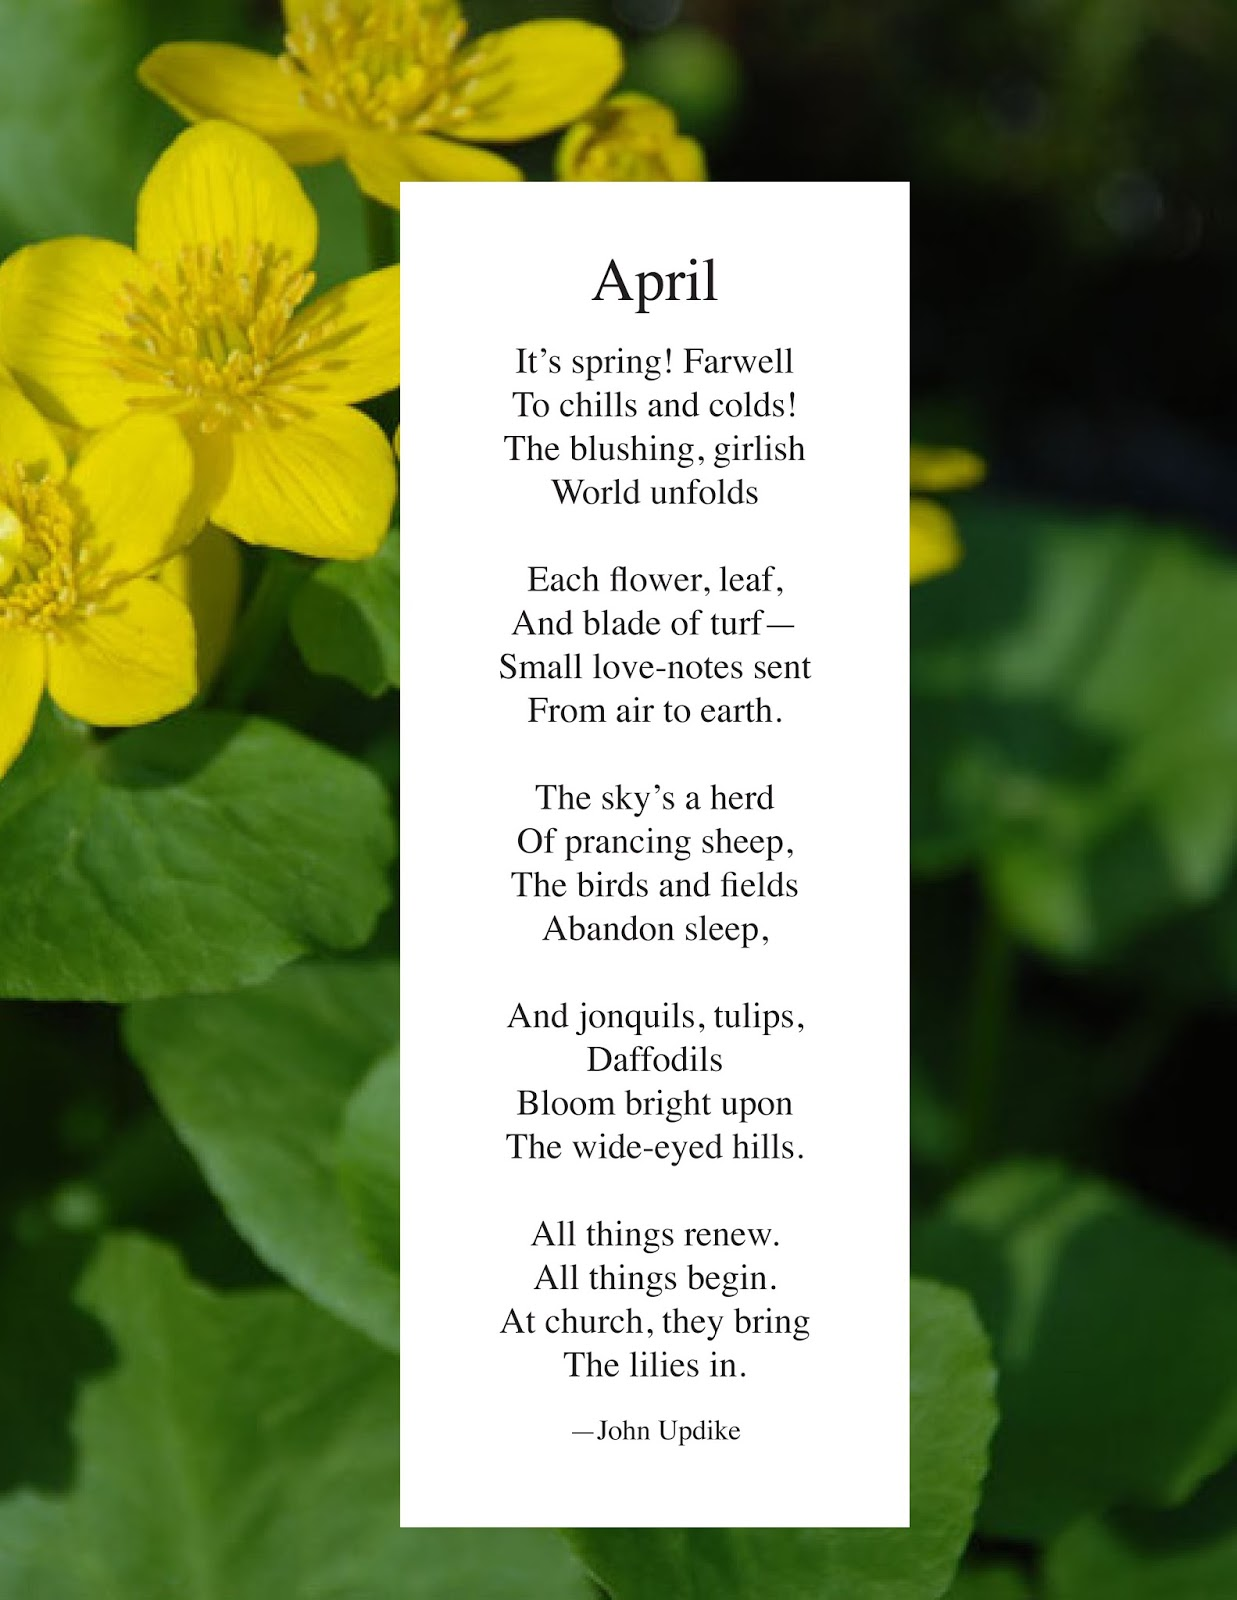 Your Favorite Monthly Blog Post Another April Poem